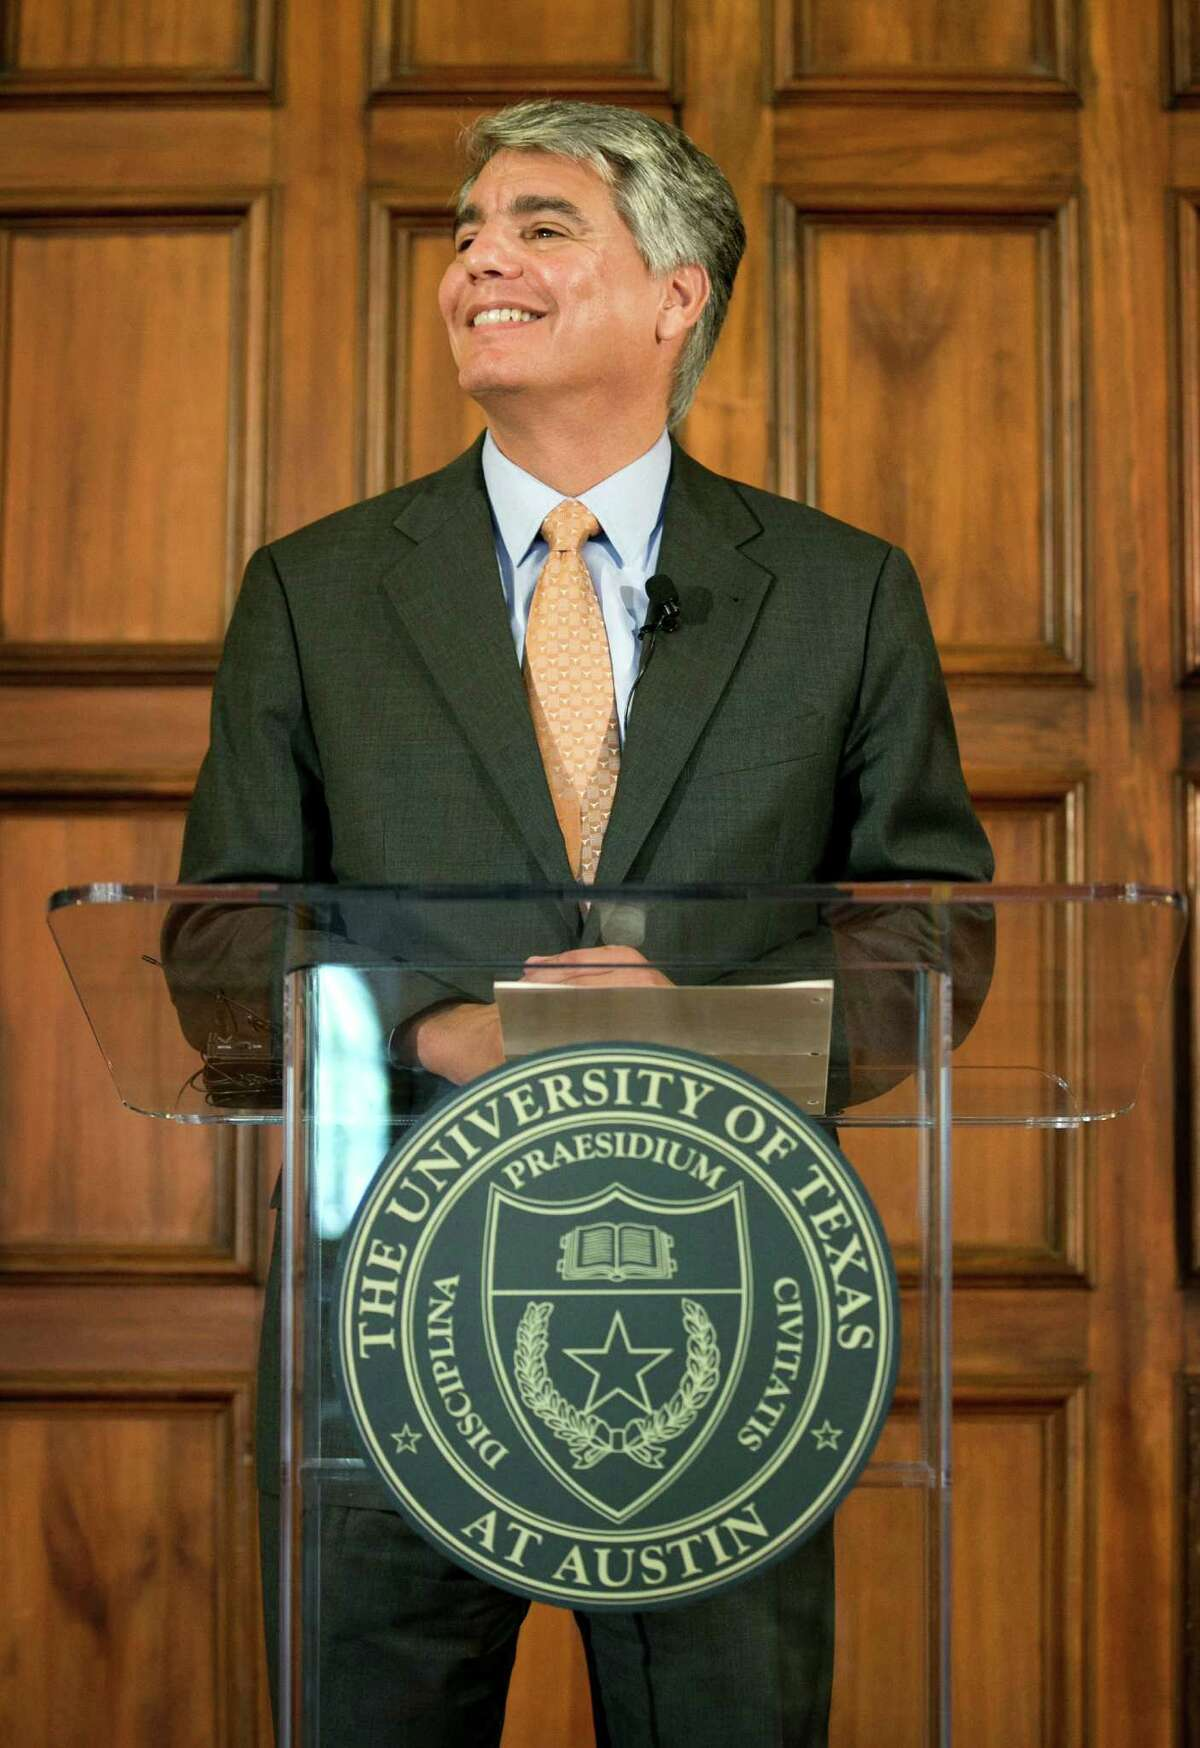 Gregory Fenves, president of the University of Texas at Austin. Learn what a recent report of sexual assaults at UT revealed in the following gallery.